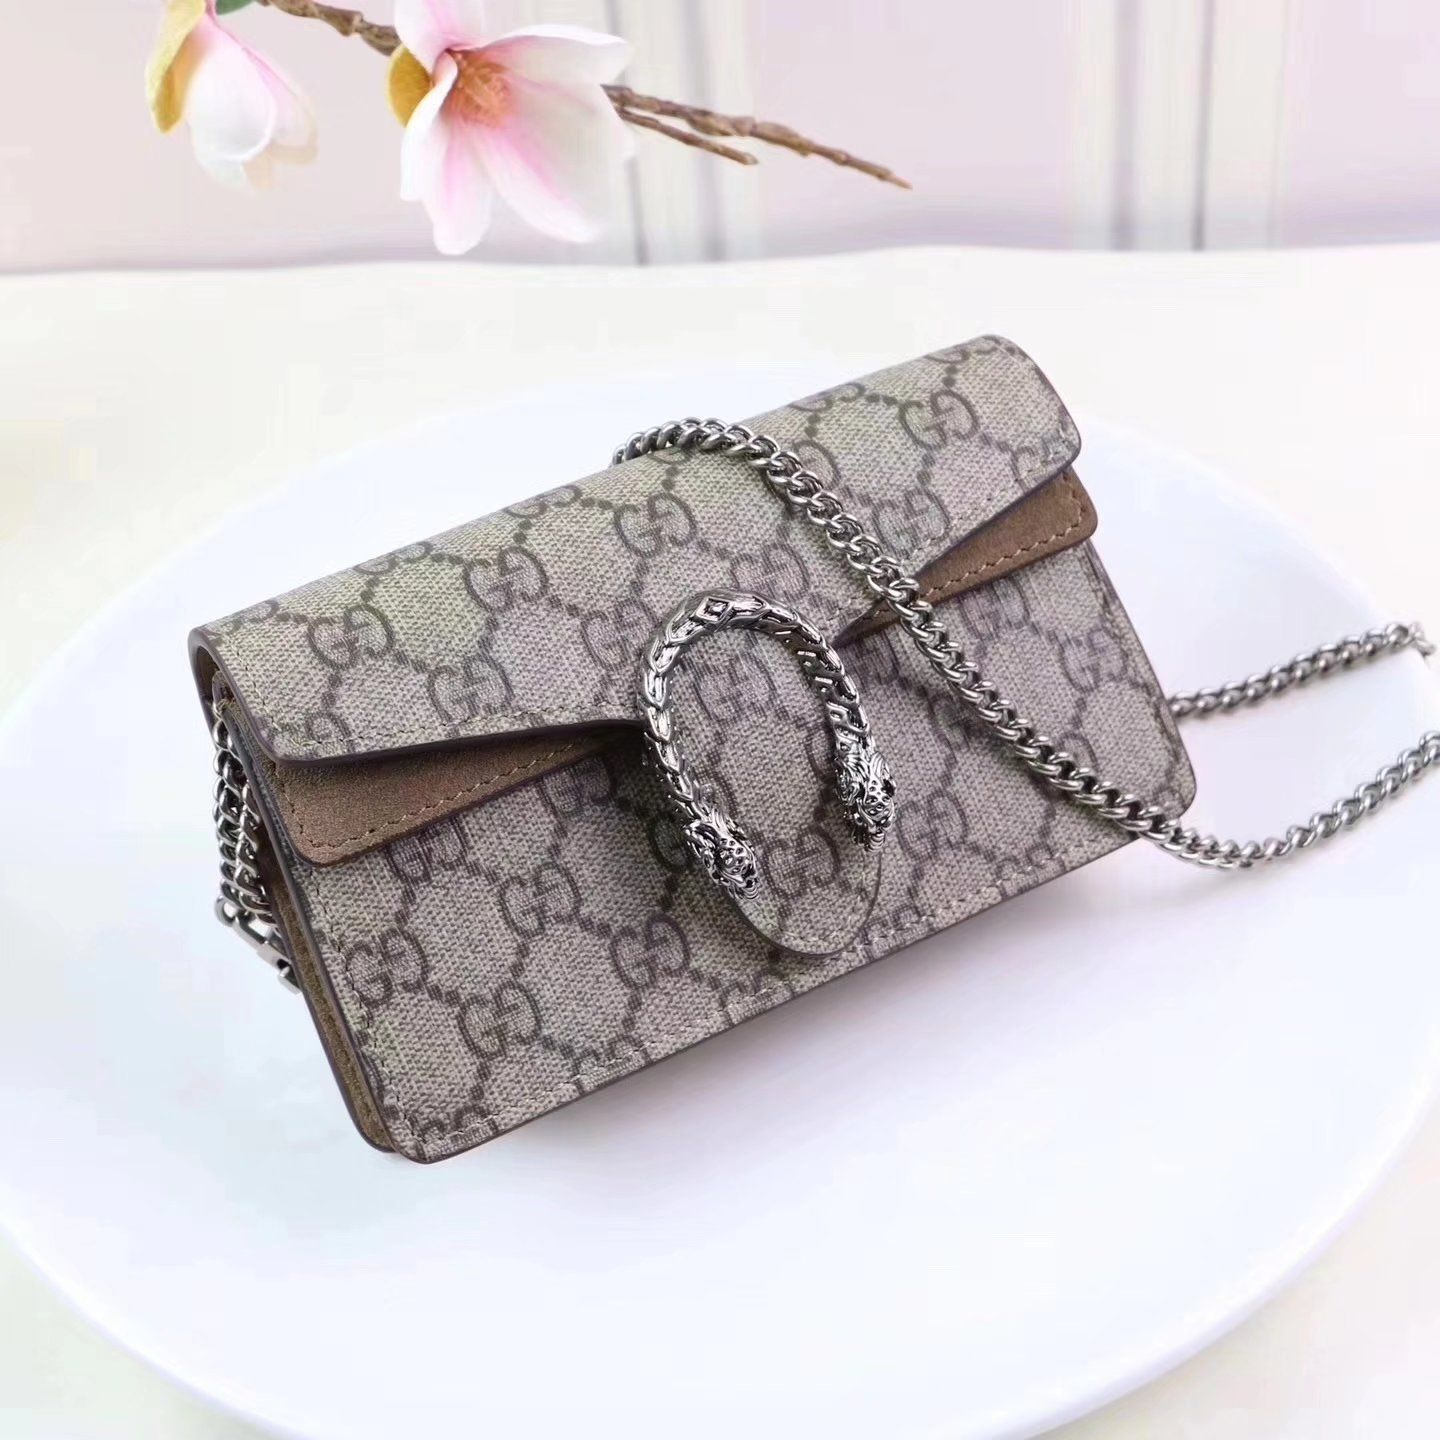 e8e2422c4592a5 Replica GUCCI Dionysus GG Supreme super mini bag Women ID:34292 $94  #replicahandbags